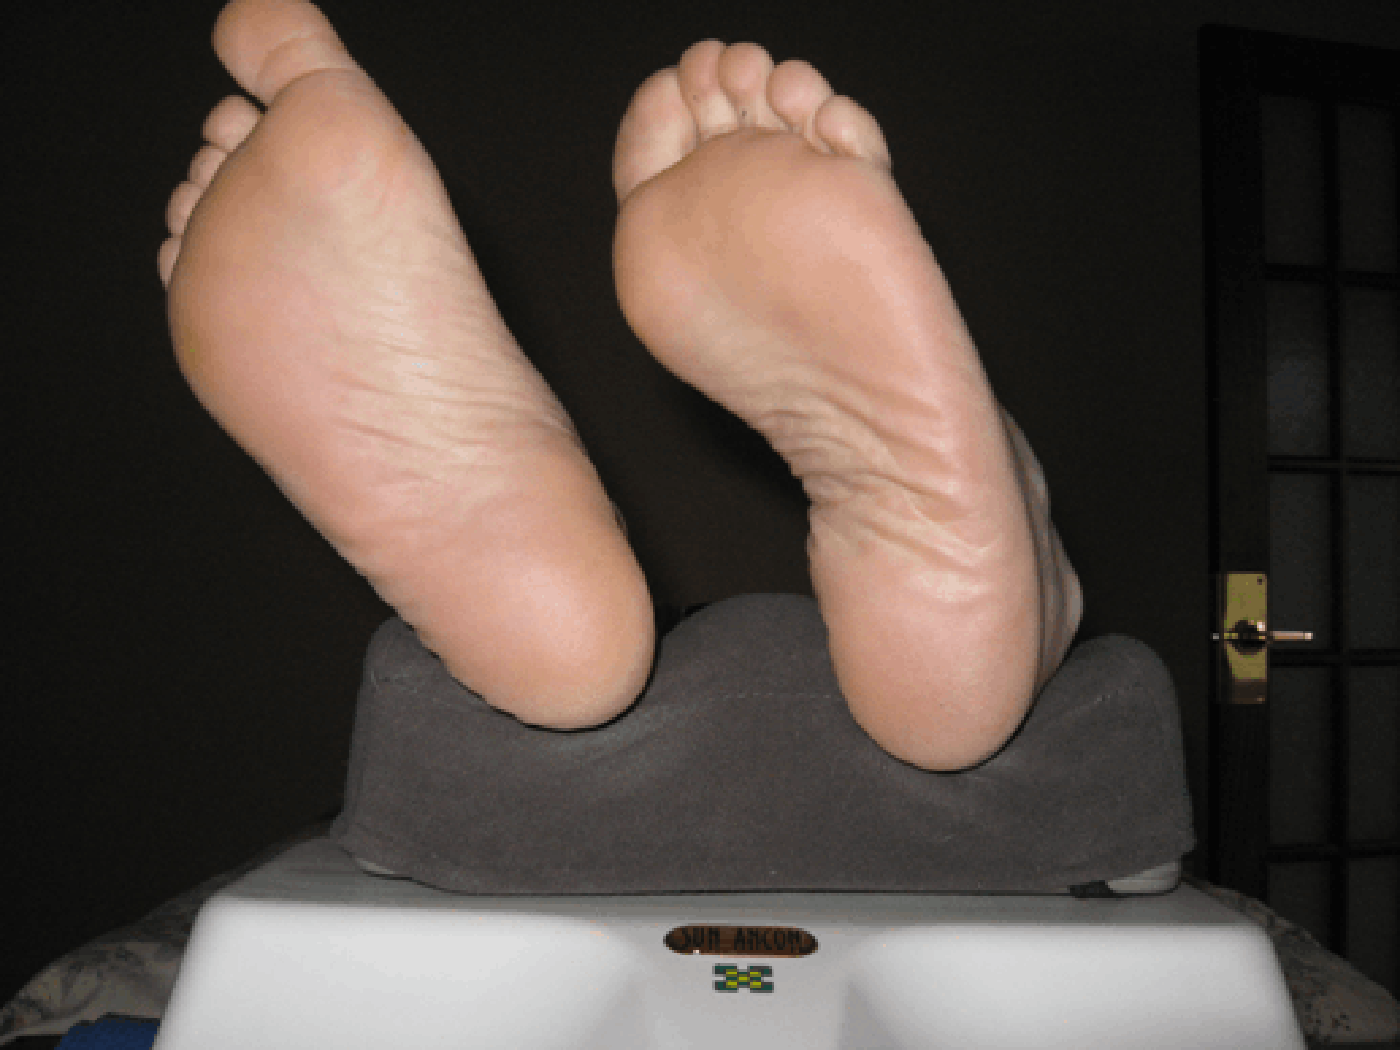 Feet on the Oxygen Massage Exerciser device